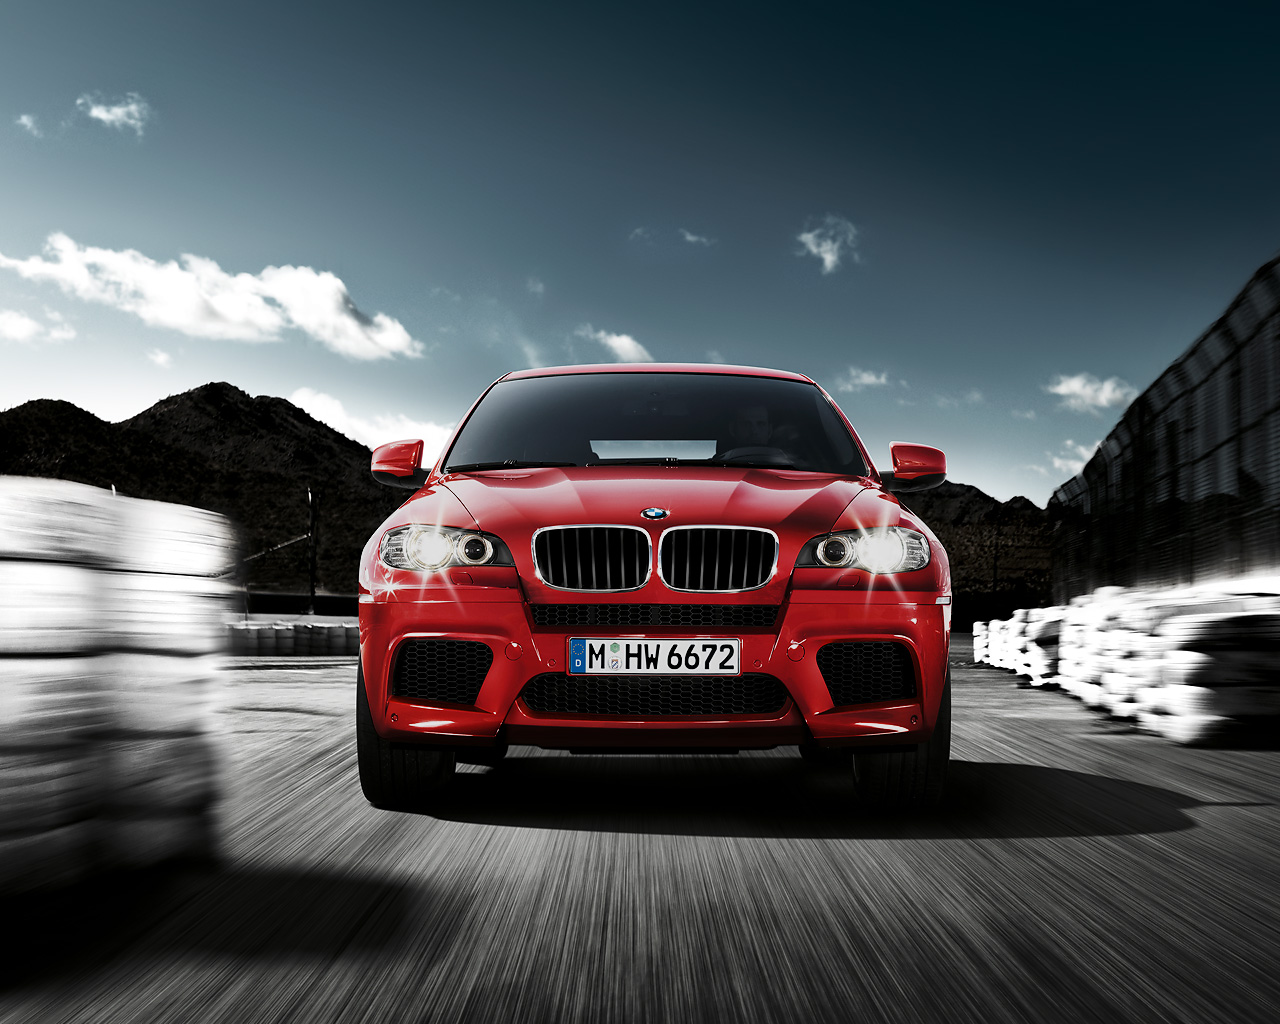 Cars Wallpapers: Car-model-2012: Cool Bmw Cars Wallpapers